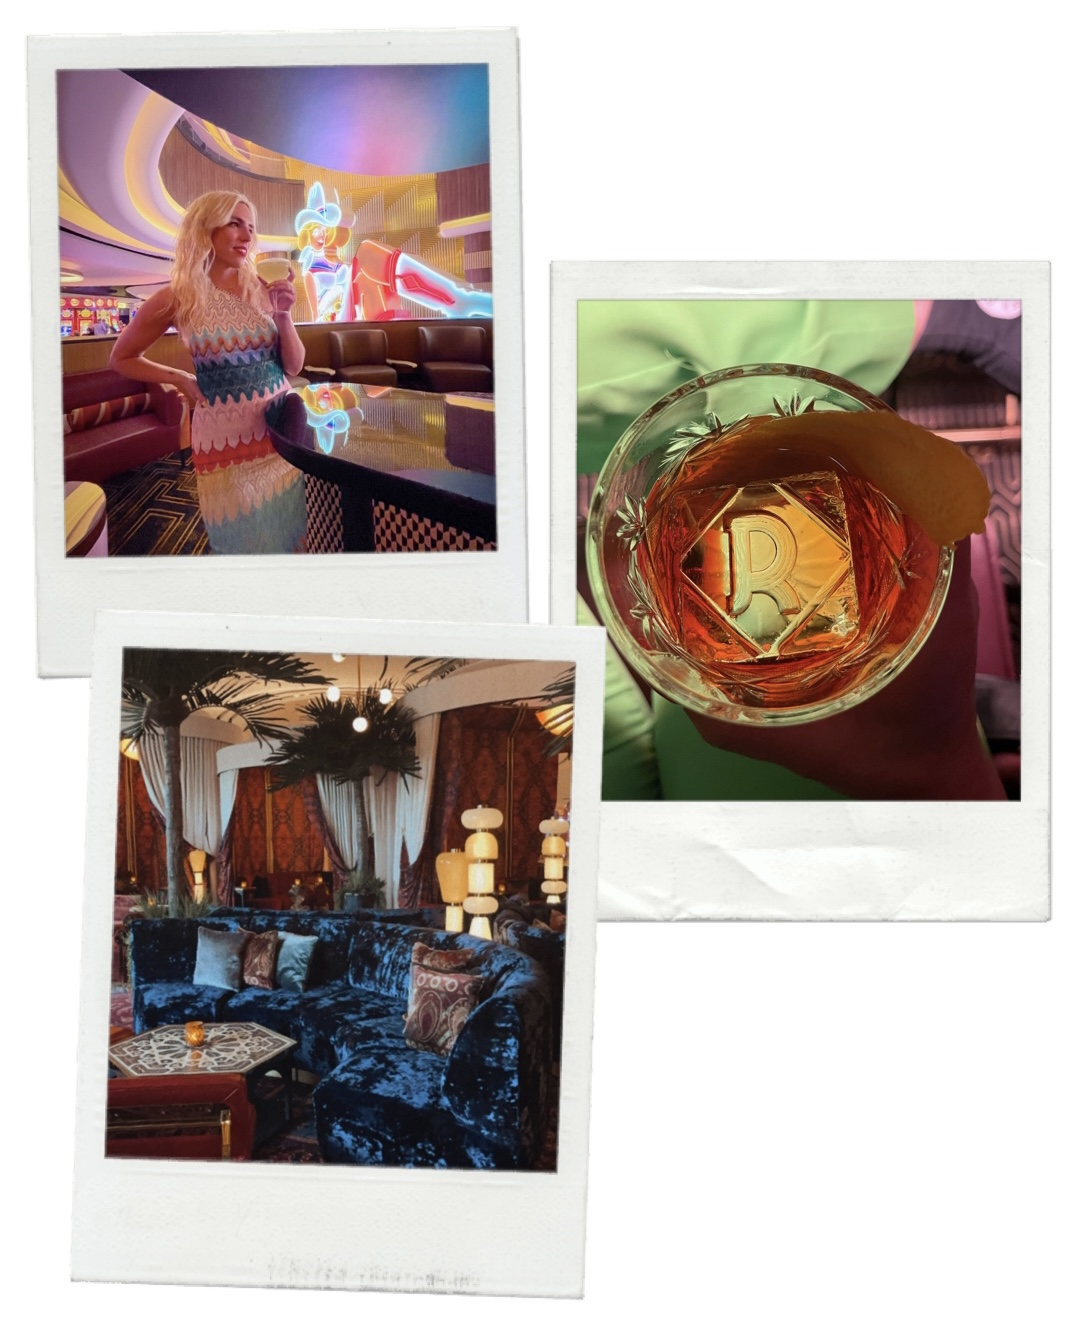 collage of images of a woman and interior of a bar